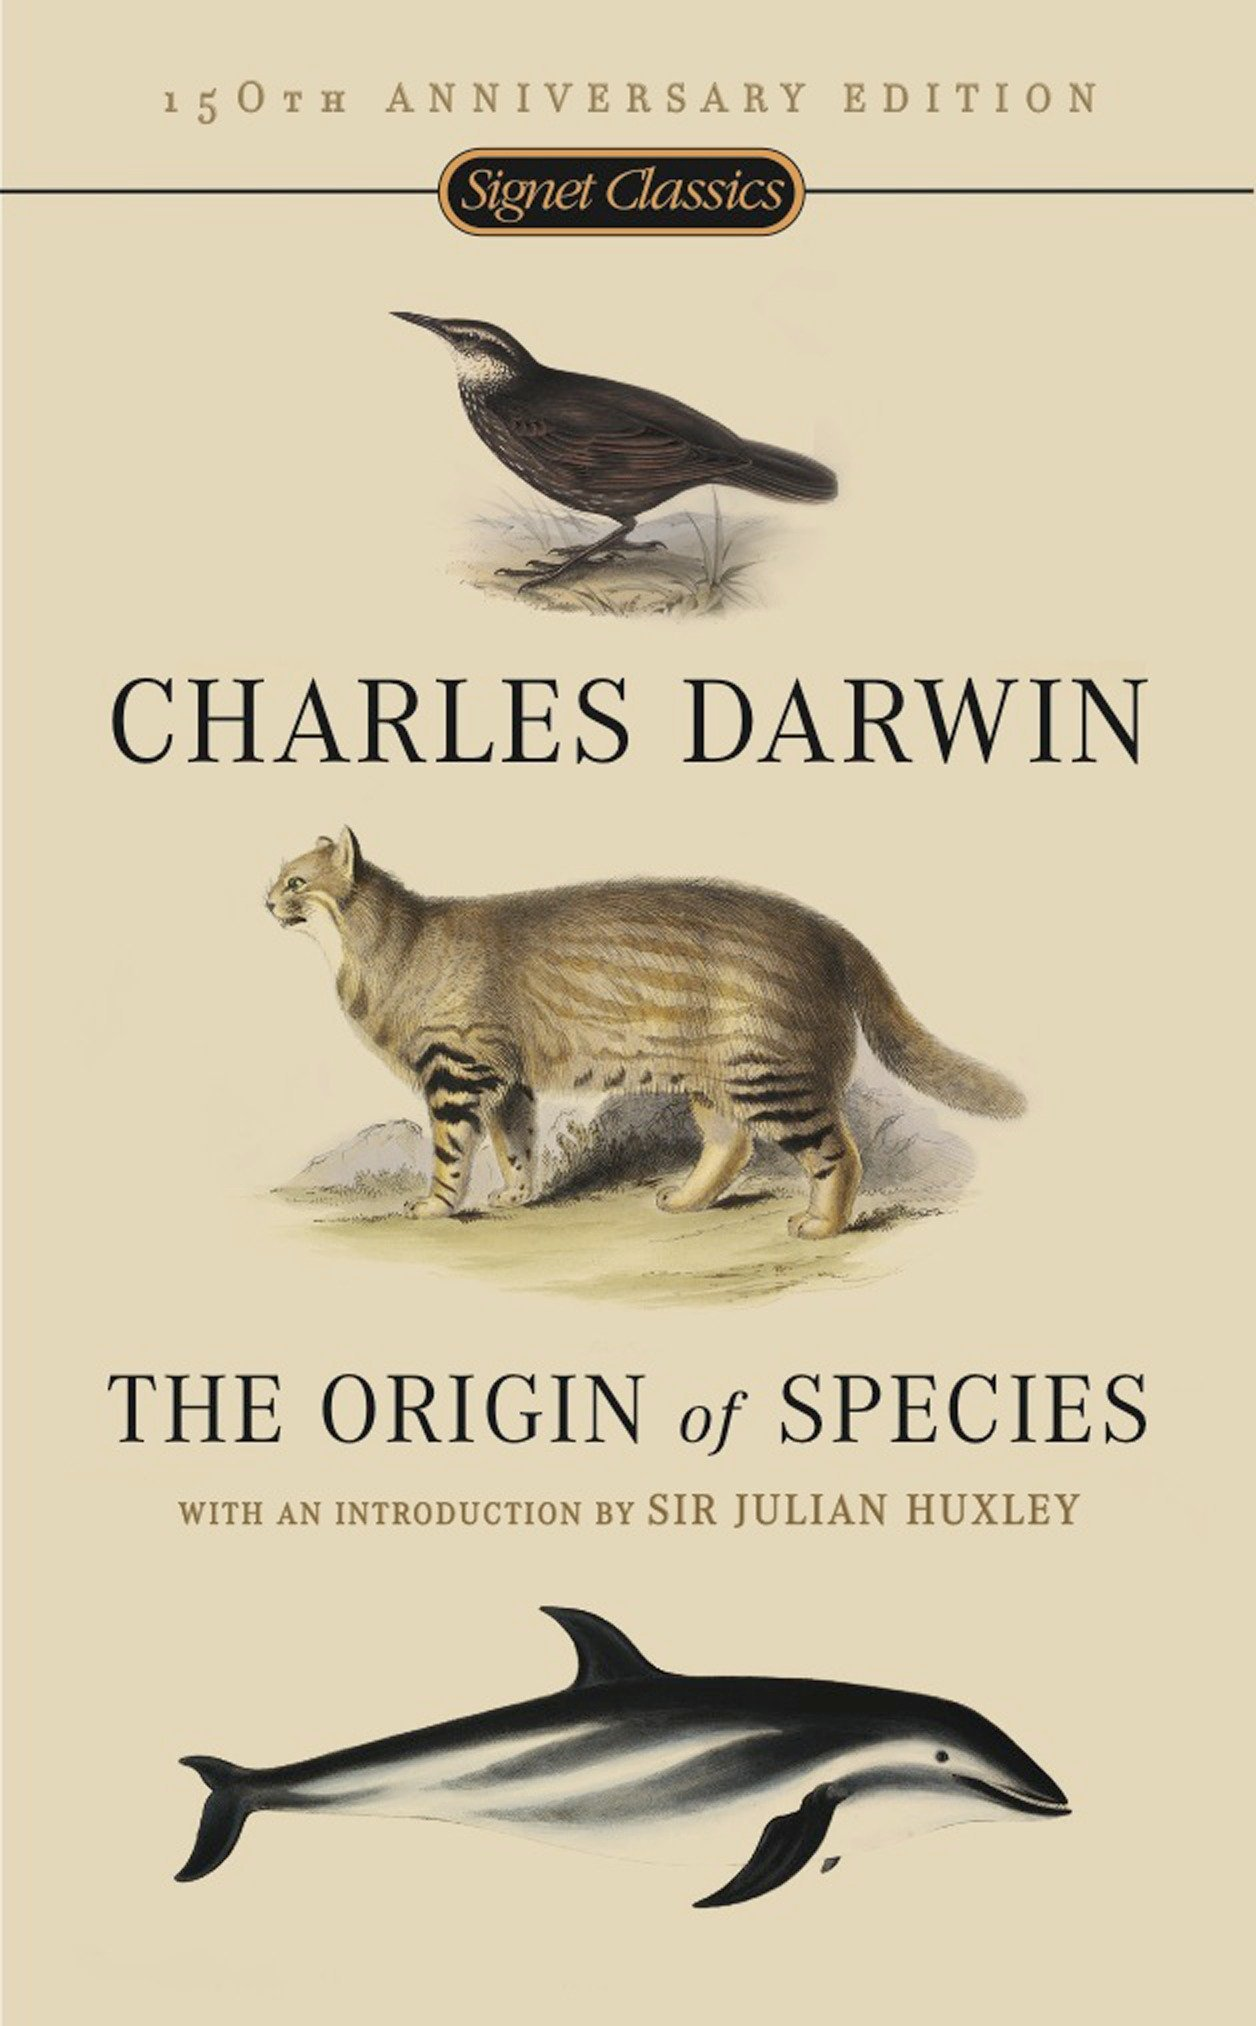 The Origin of Species: 150th Anniversary Edition: Charles Darwin, Julian  Huxley: 9780451529060: Amazon.com: Books